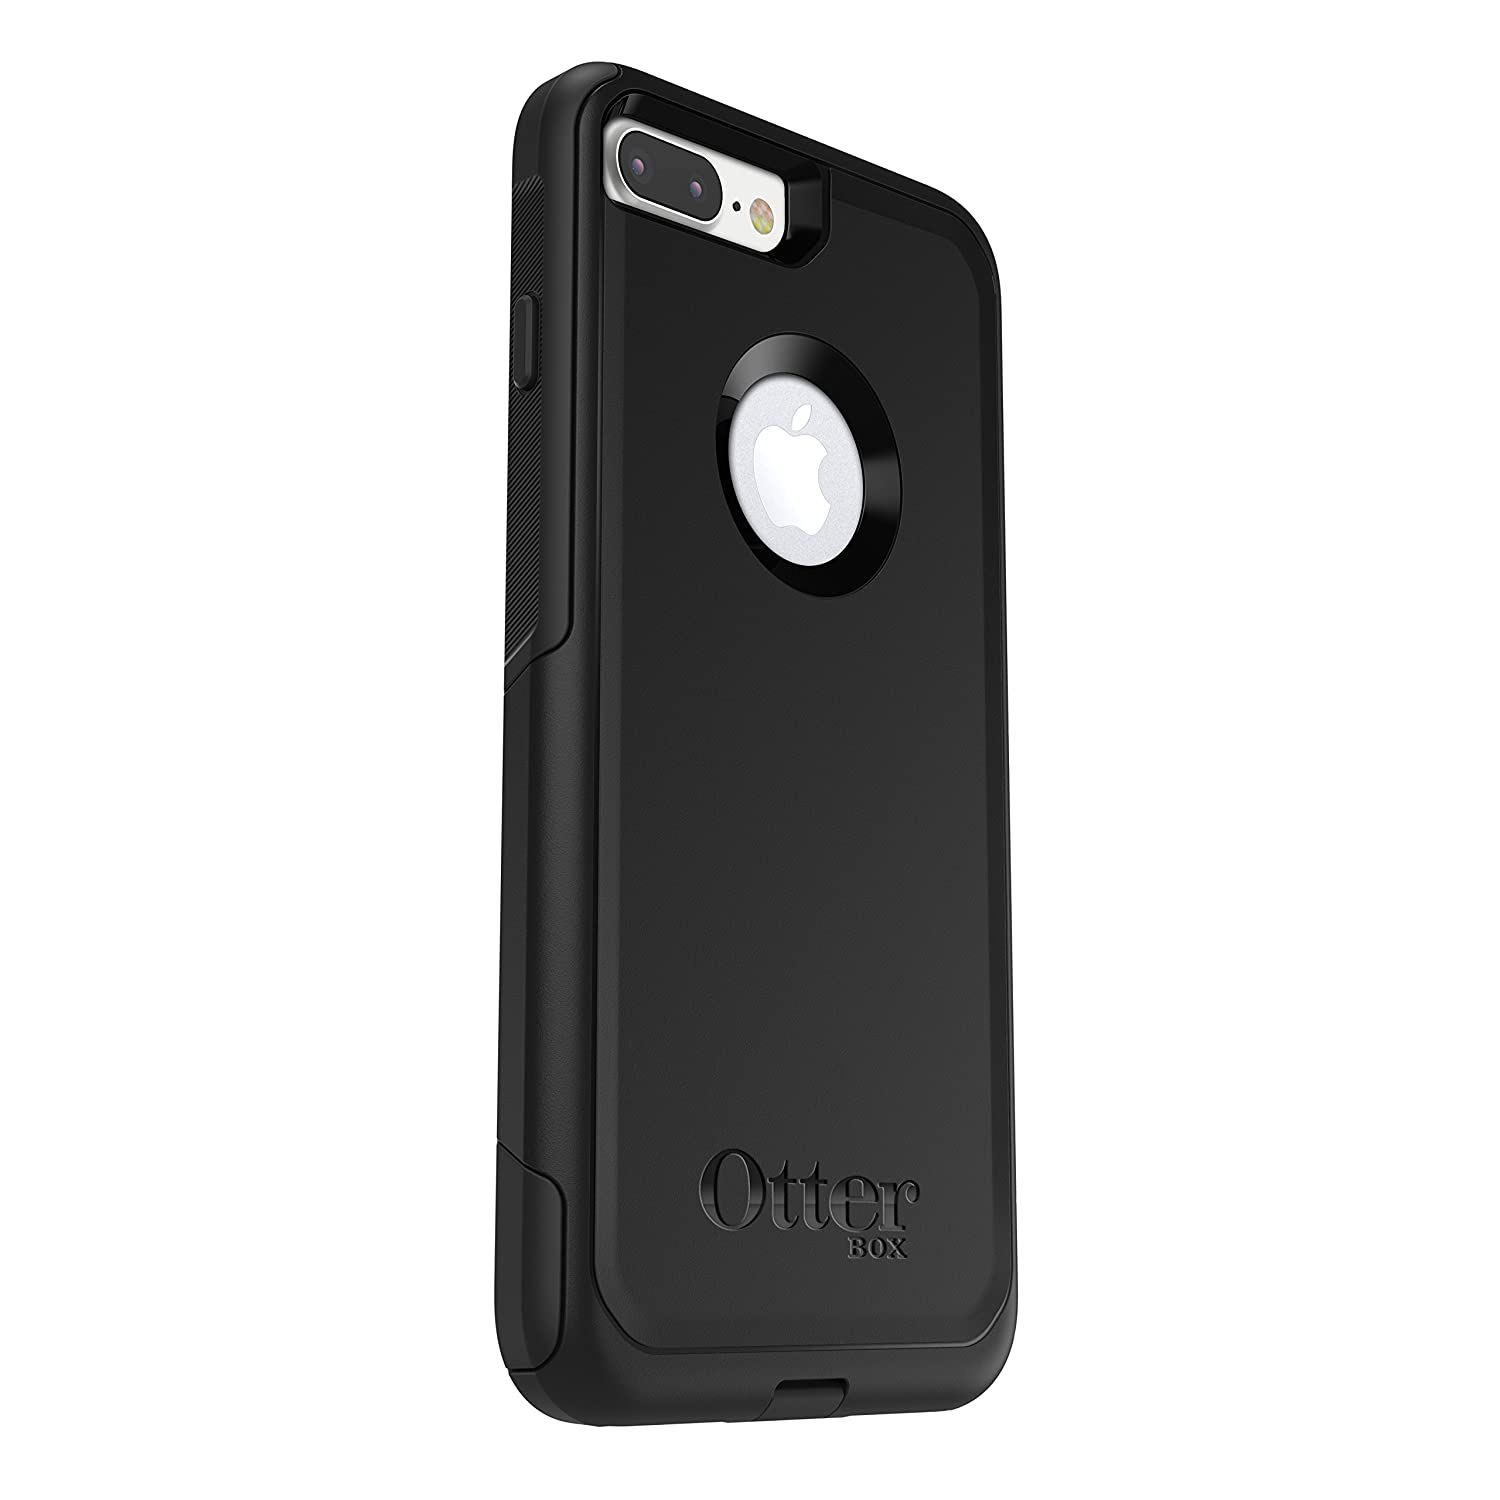 Amazon.com  OtterBox COMMUTER SERIES Case for iPhone 7 Plus (ONLY) - Retail  Packaging - BLACK  Cell Phones   Accessories 96191b41a